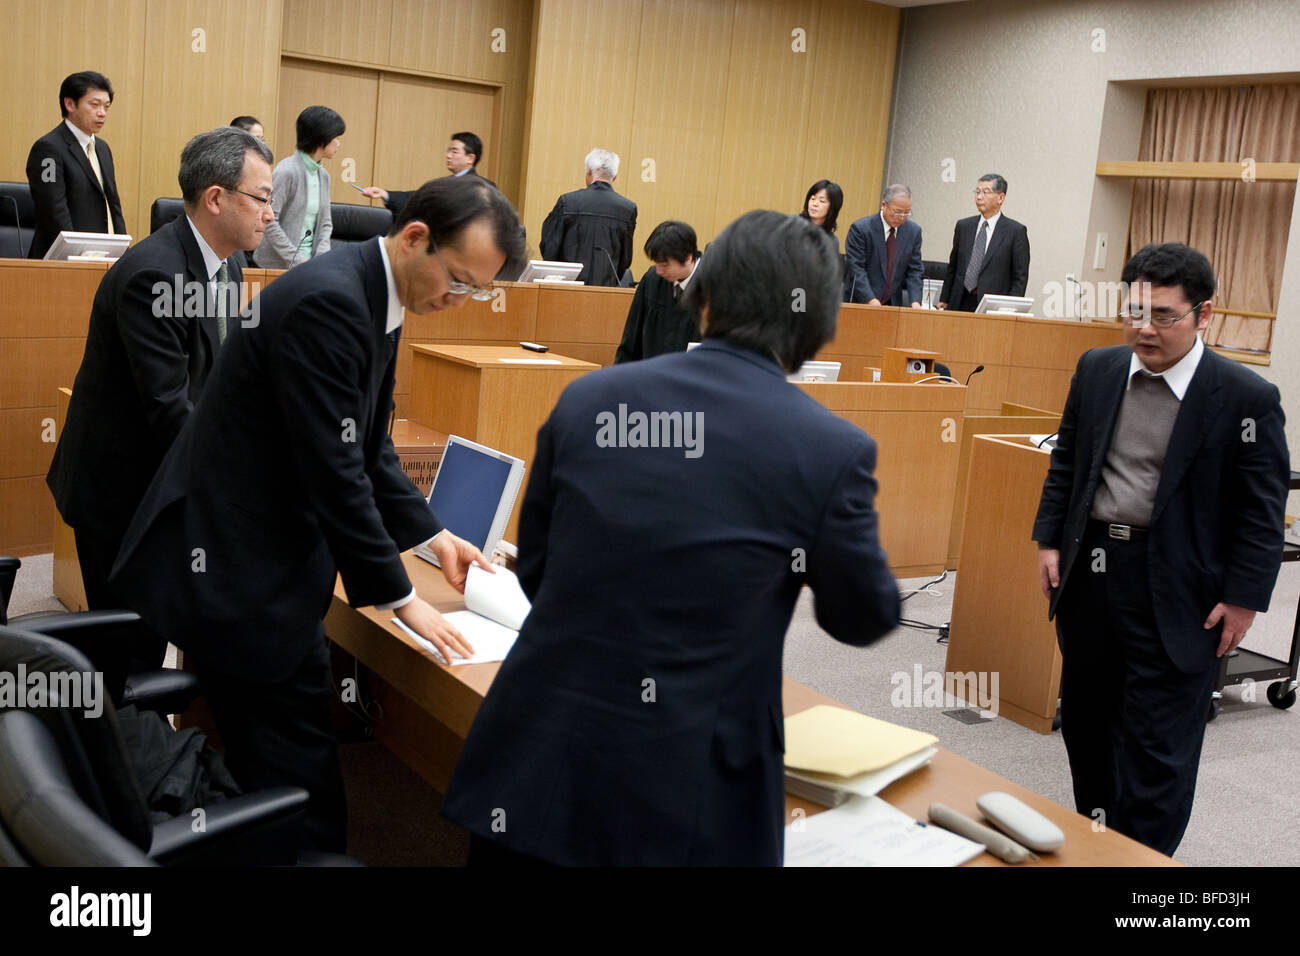 a 'mock' jury/court case being acted out in a Japanese law court. - Stock Image